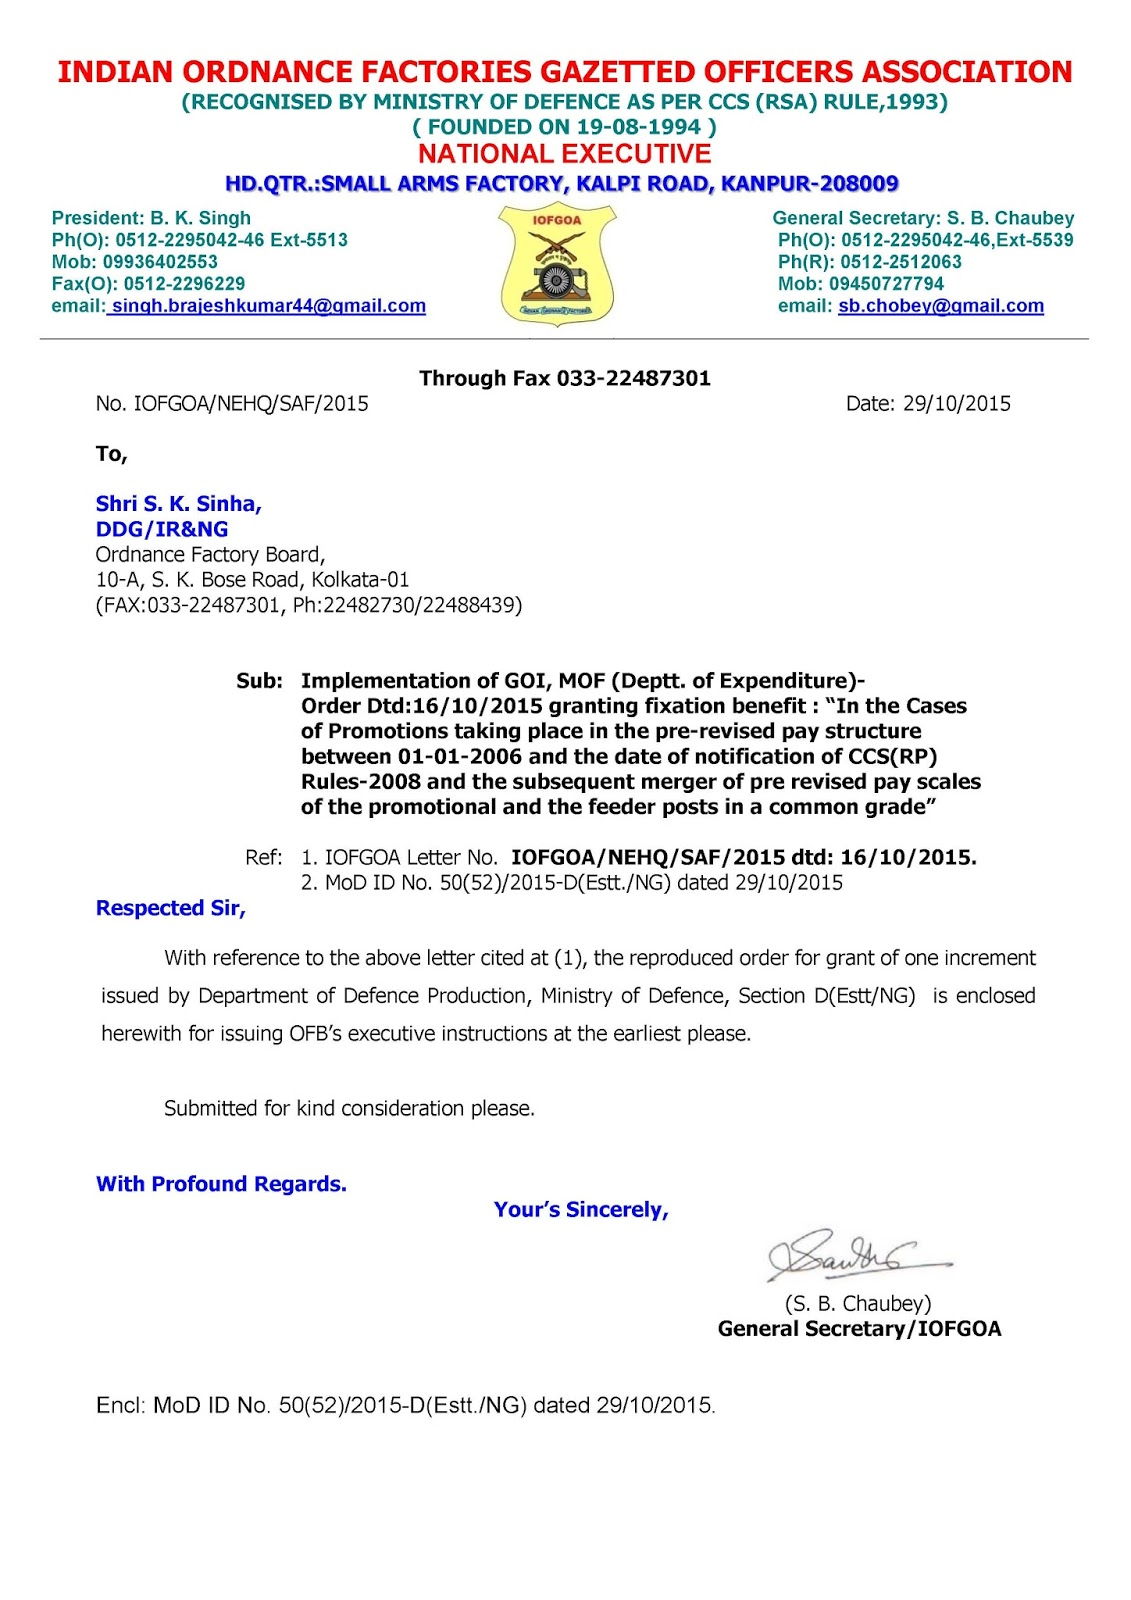 Iofgoa indian ordnance factories gazzetted officers association department of defence production ministry of defence section desttng letter to ofb for mof one increment order thecheapjerseys Gallery